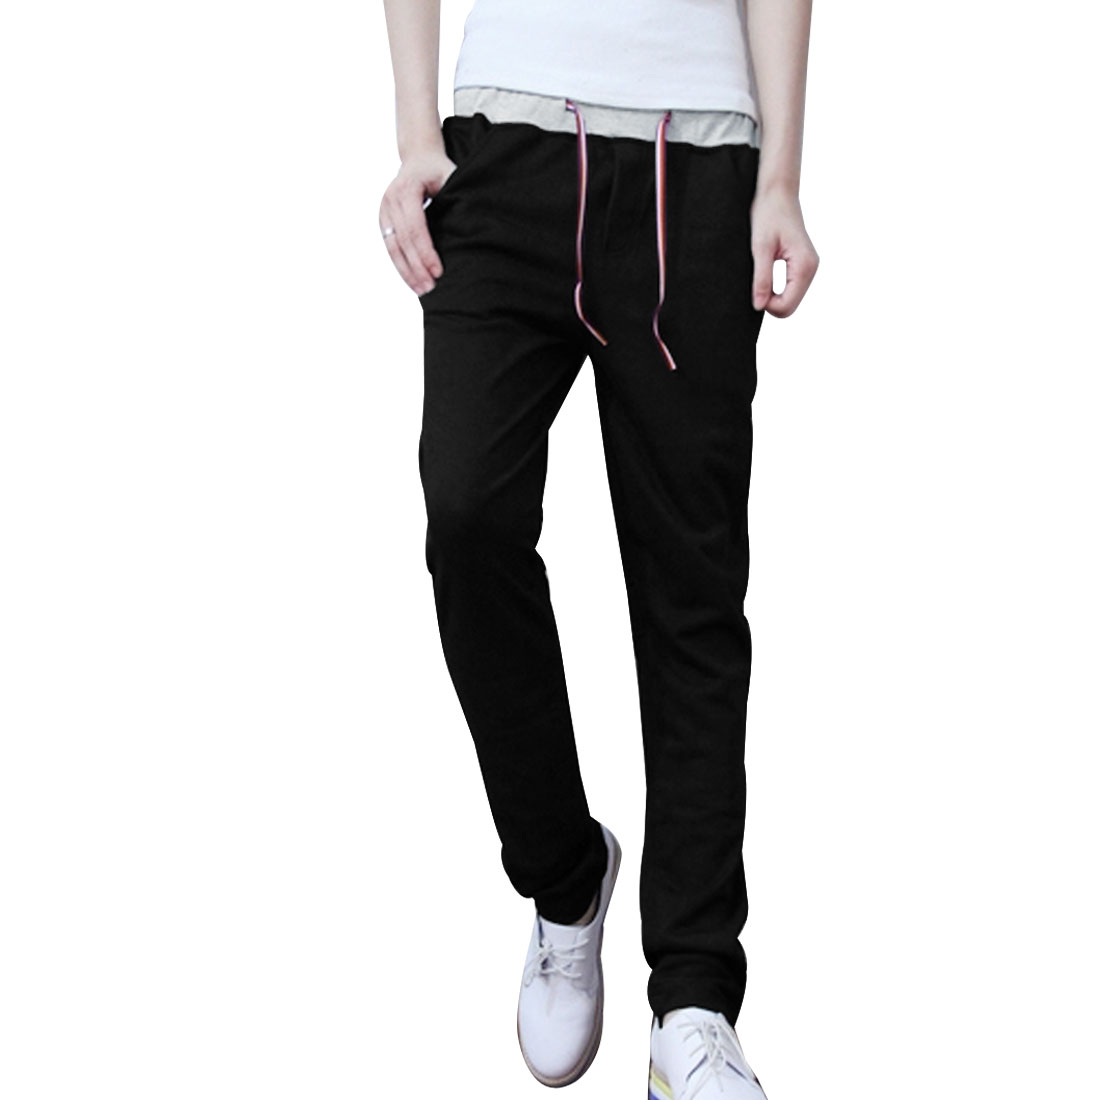 Mens Low Rise Elastic Waistband Autumn New Fashion Casual Black Pants W27